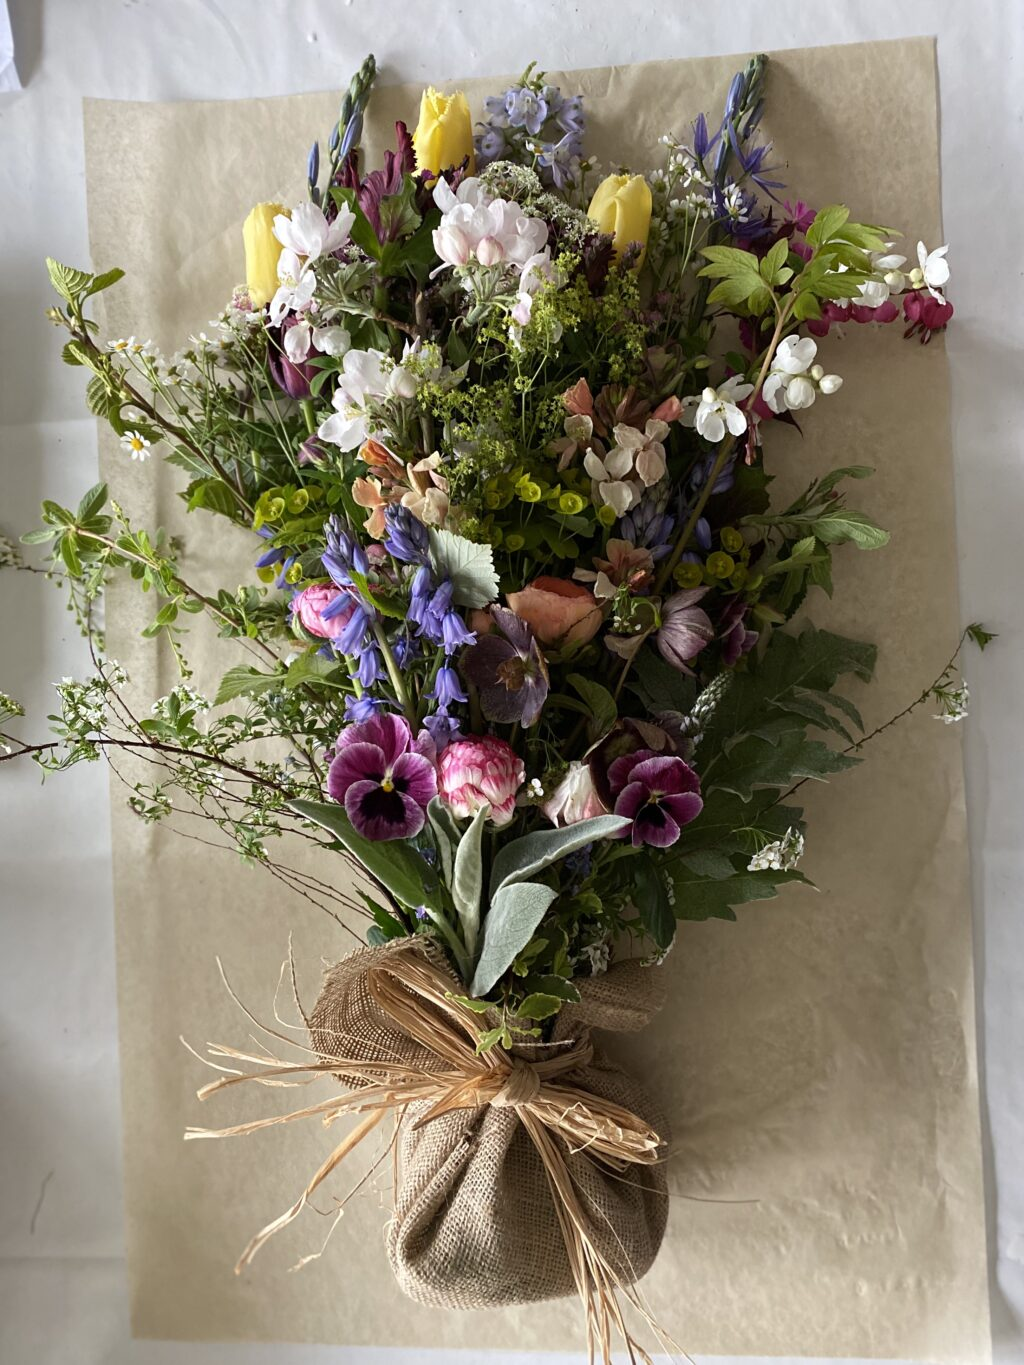 A natural funeral sheaf with seasonal spring flowers: tulips, bluebells, pansies and blossom. By Henthorn Farm Flowers.